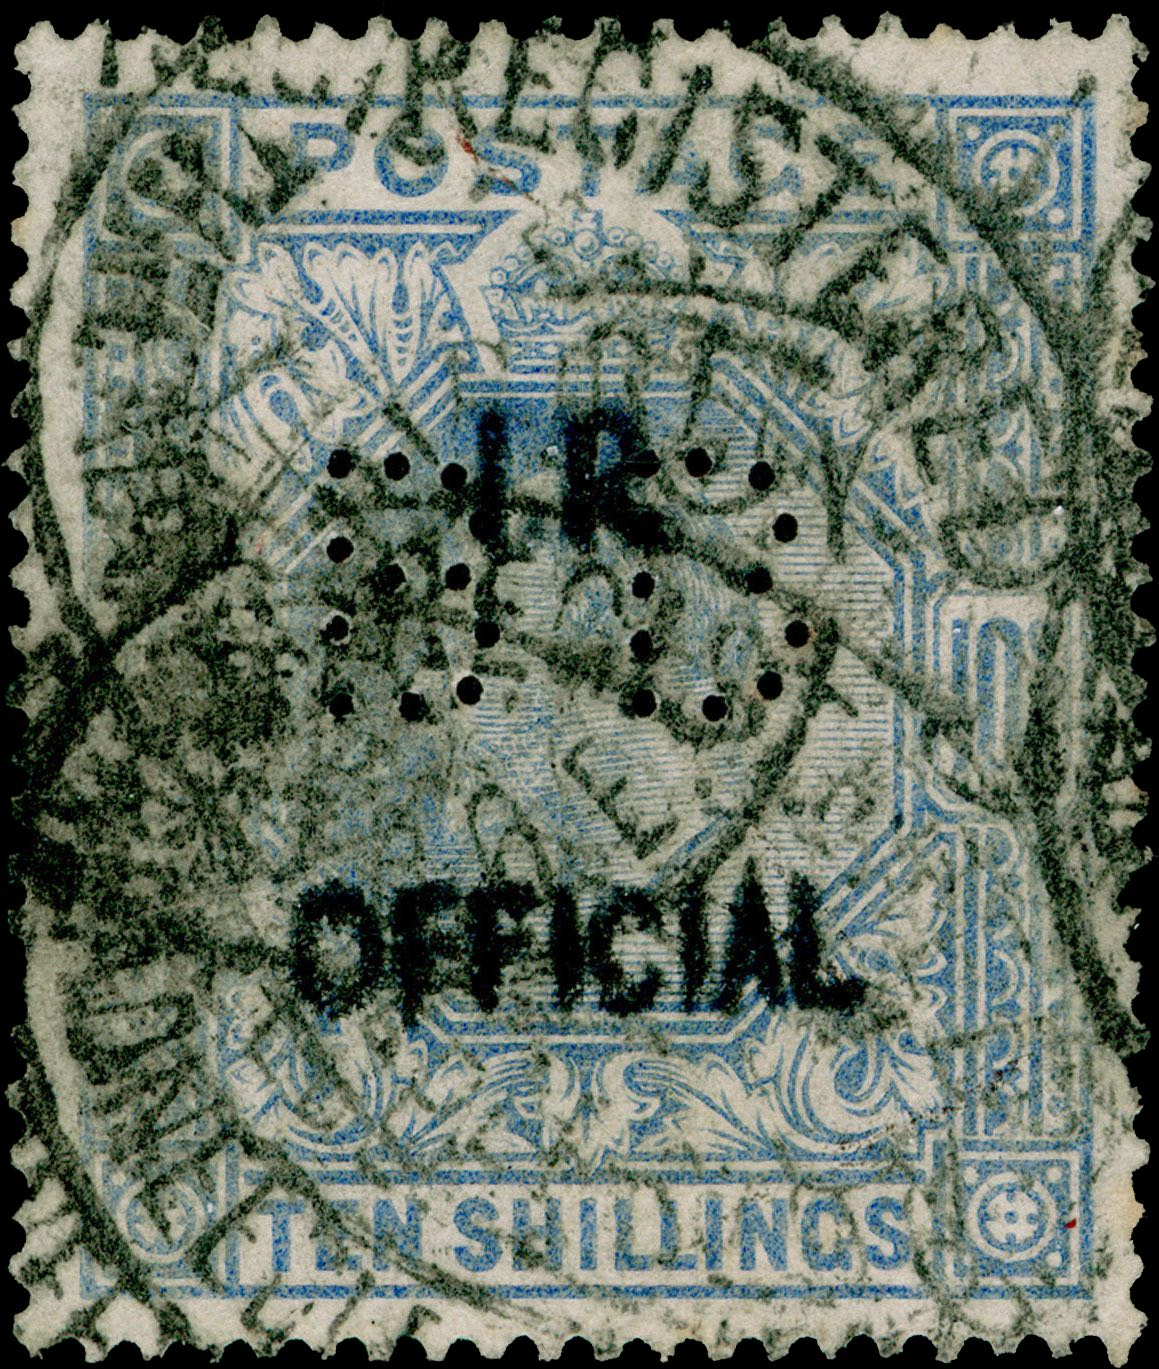 Great_Britain_Official_Edward_10s_I.R.Official_Forgery